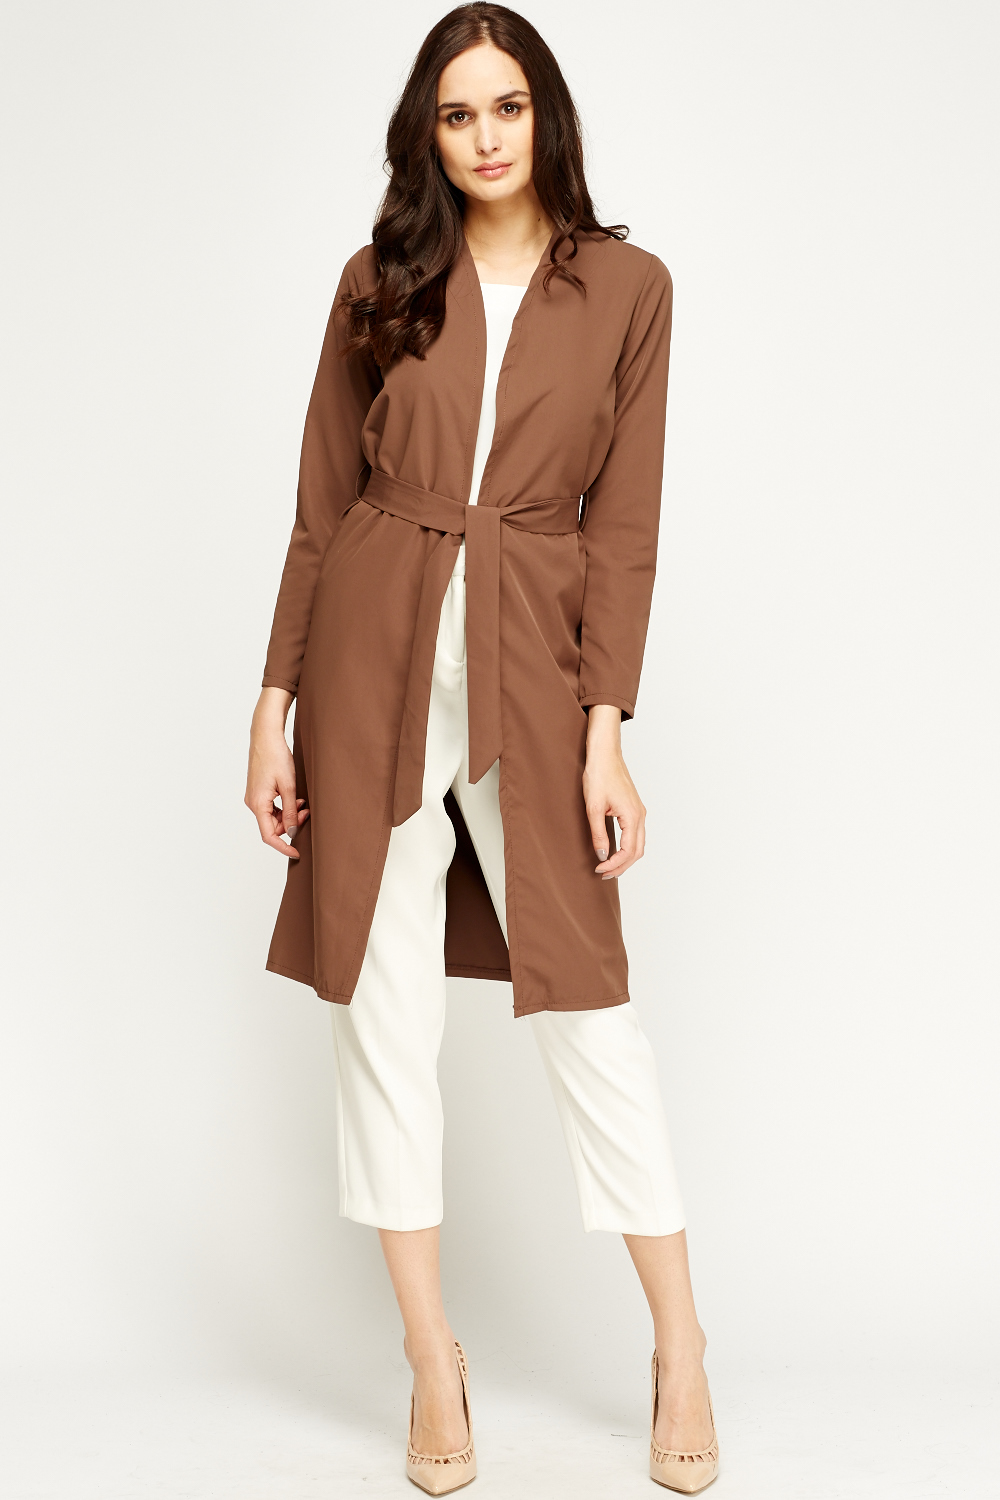 Jackets & Coats for Women for £5 | Everything5Pounds